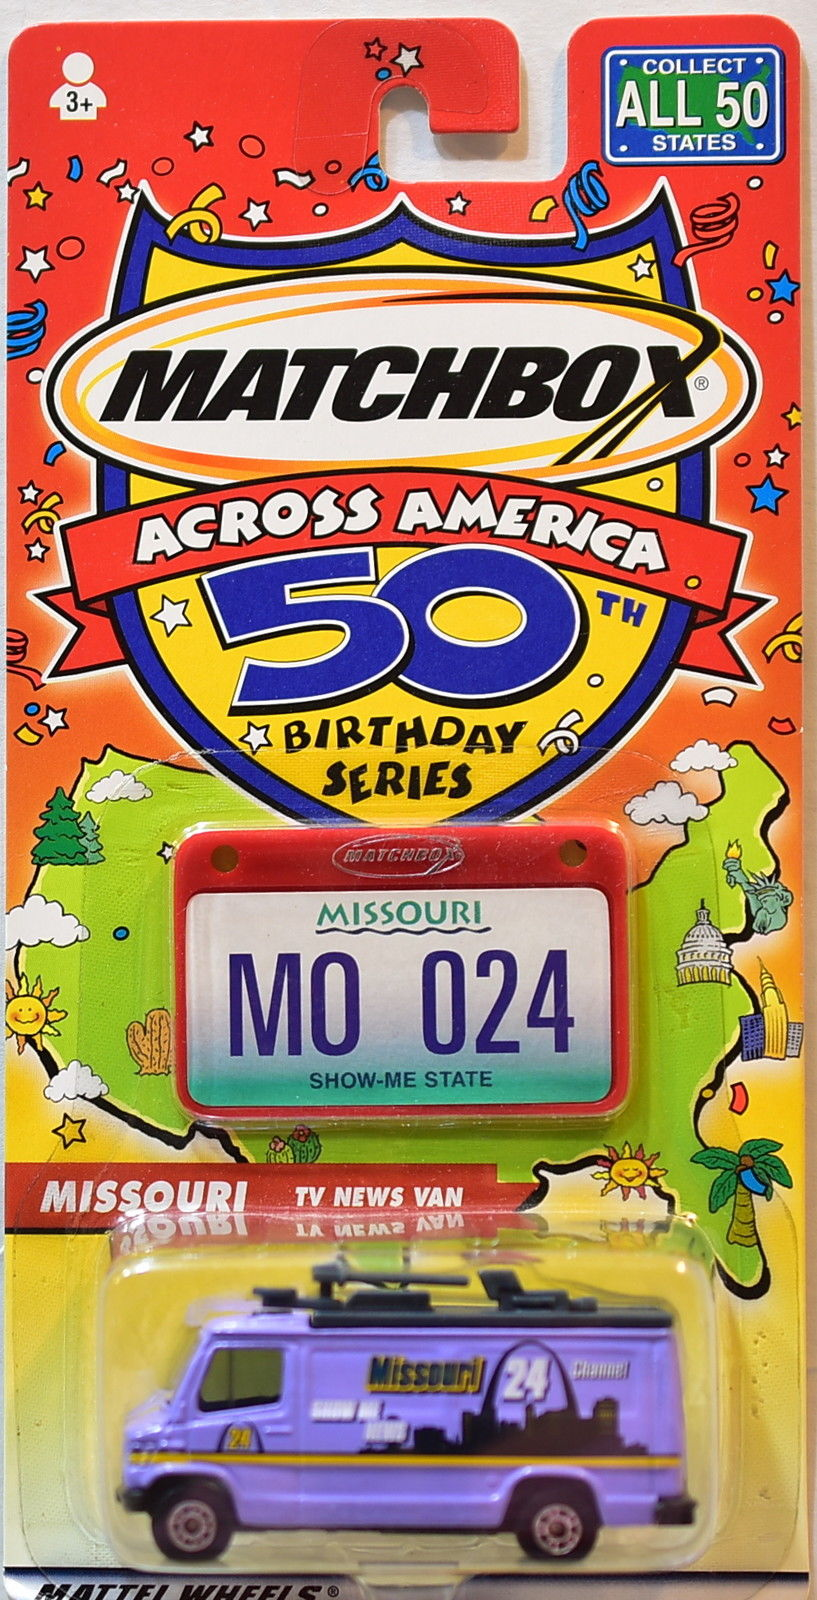 MATCHBOX ACROSS AMERICA 50TH BIRTHDAY SERIES MISSOURI